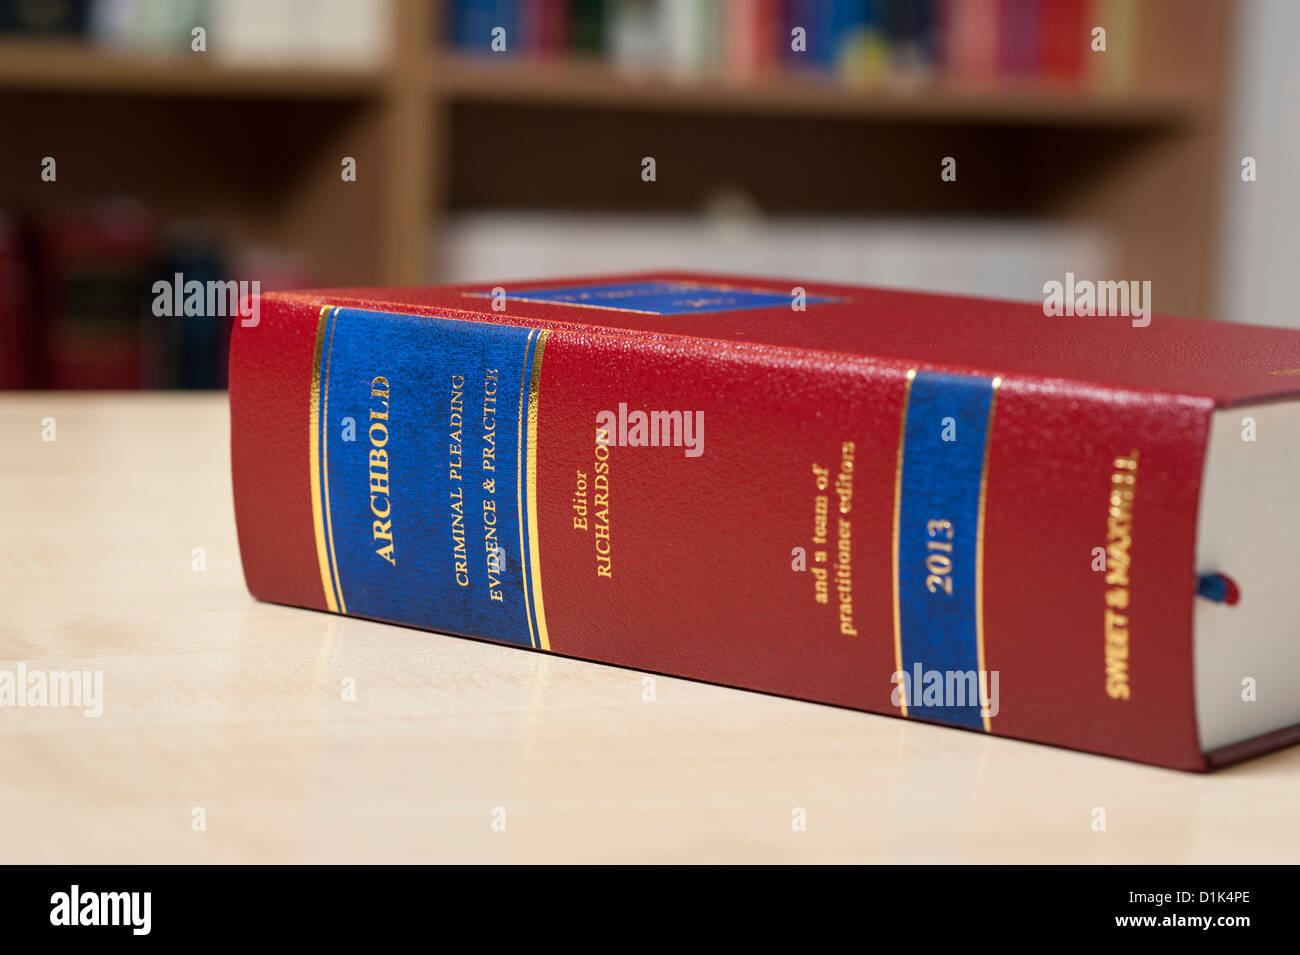 Close up photo of Archbold 2013 law book sitting on desk in office with book shelves of law books. - Stock Image